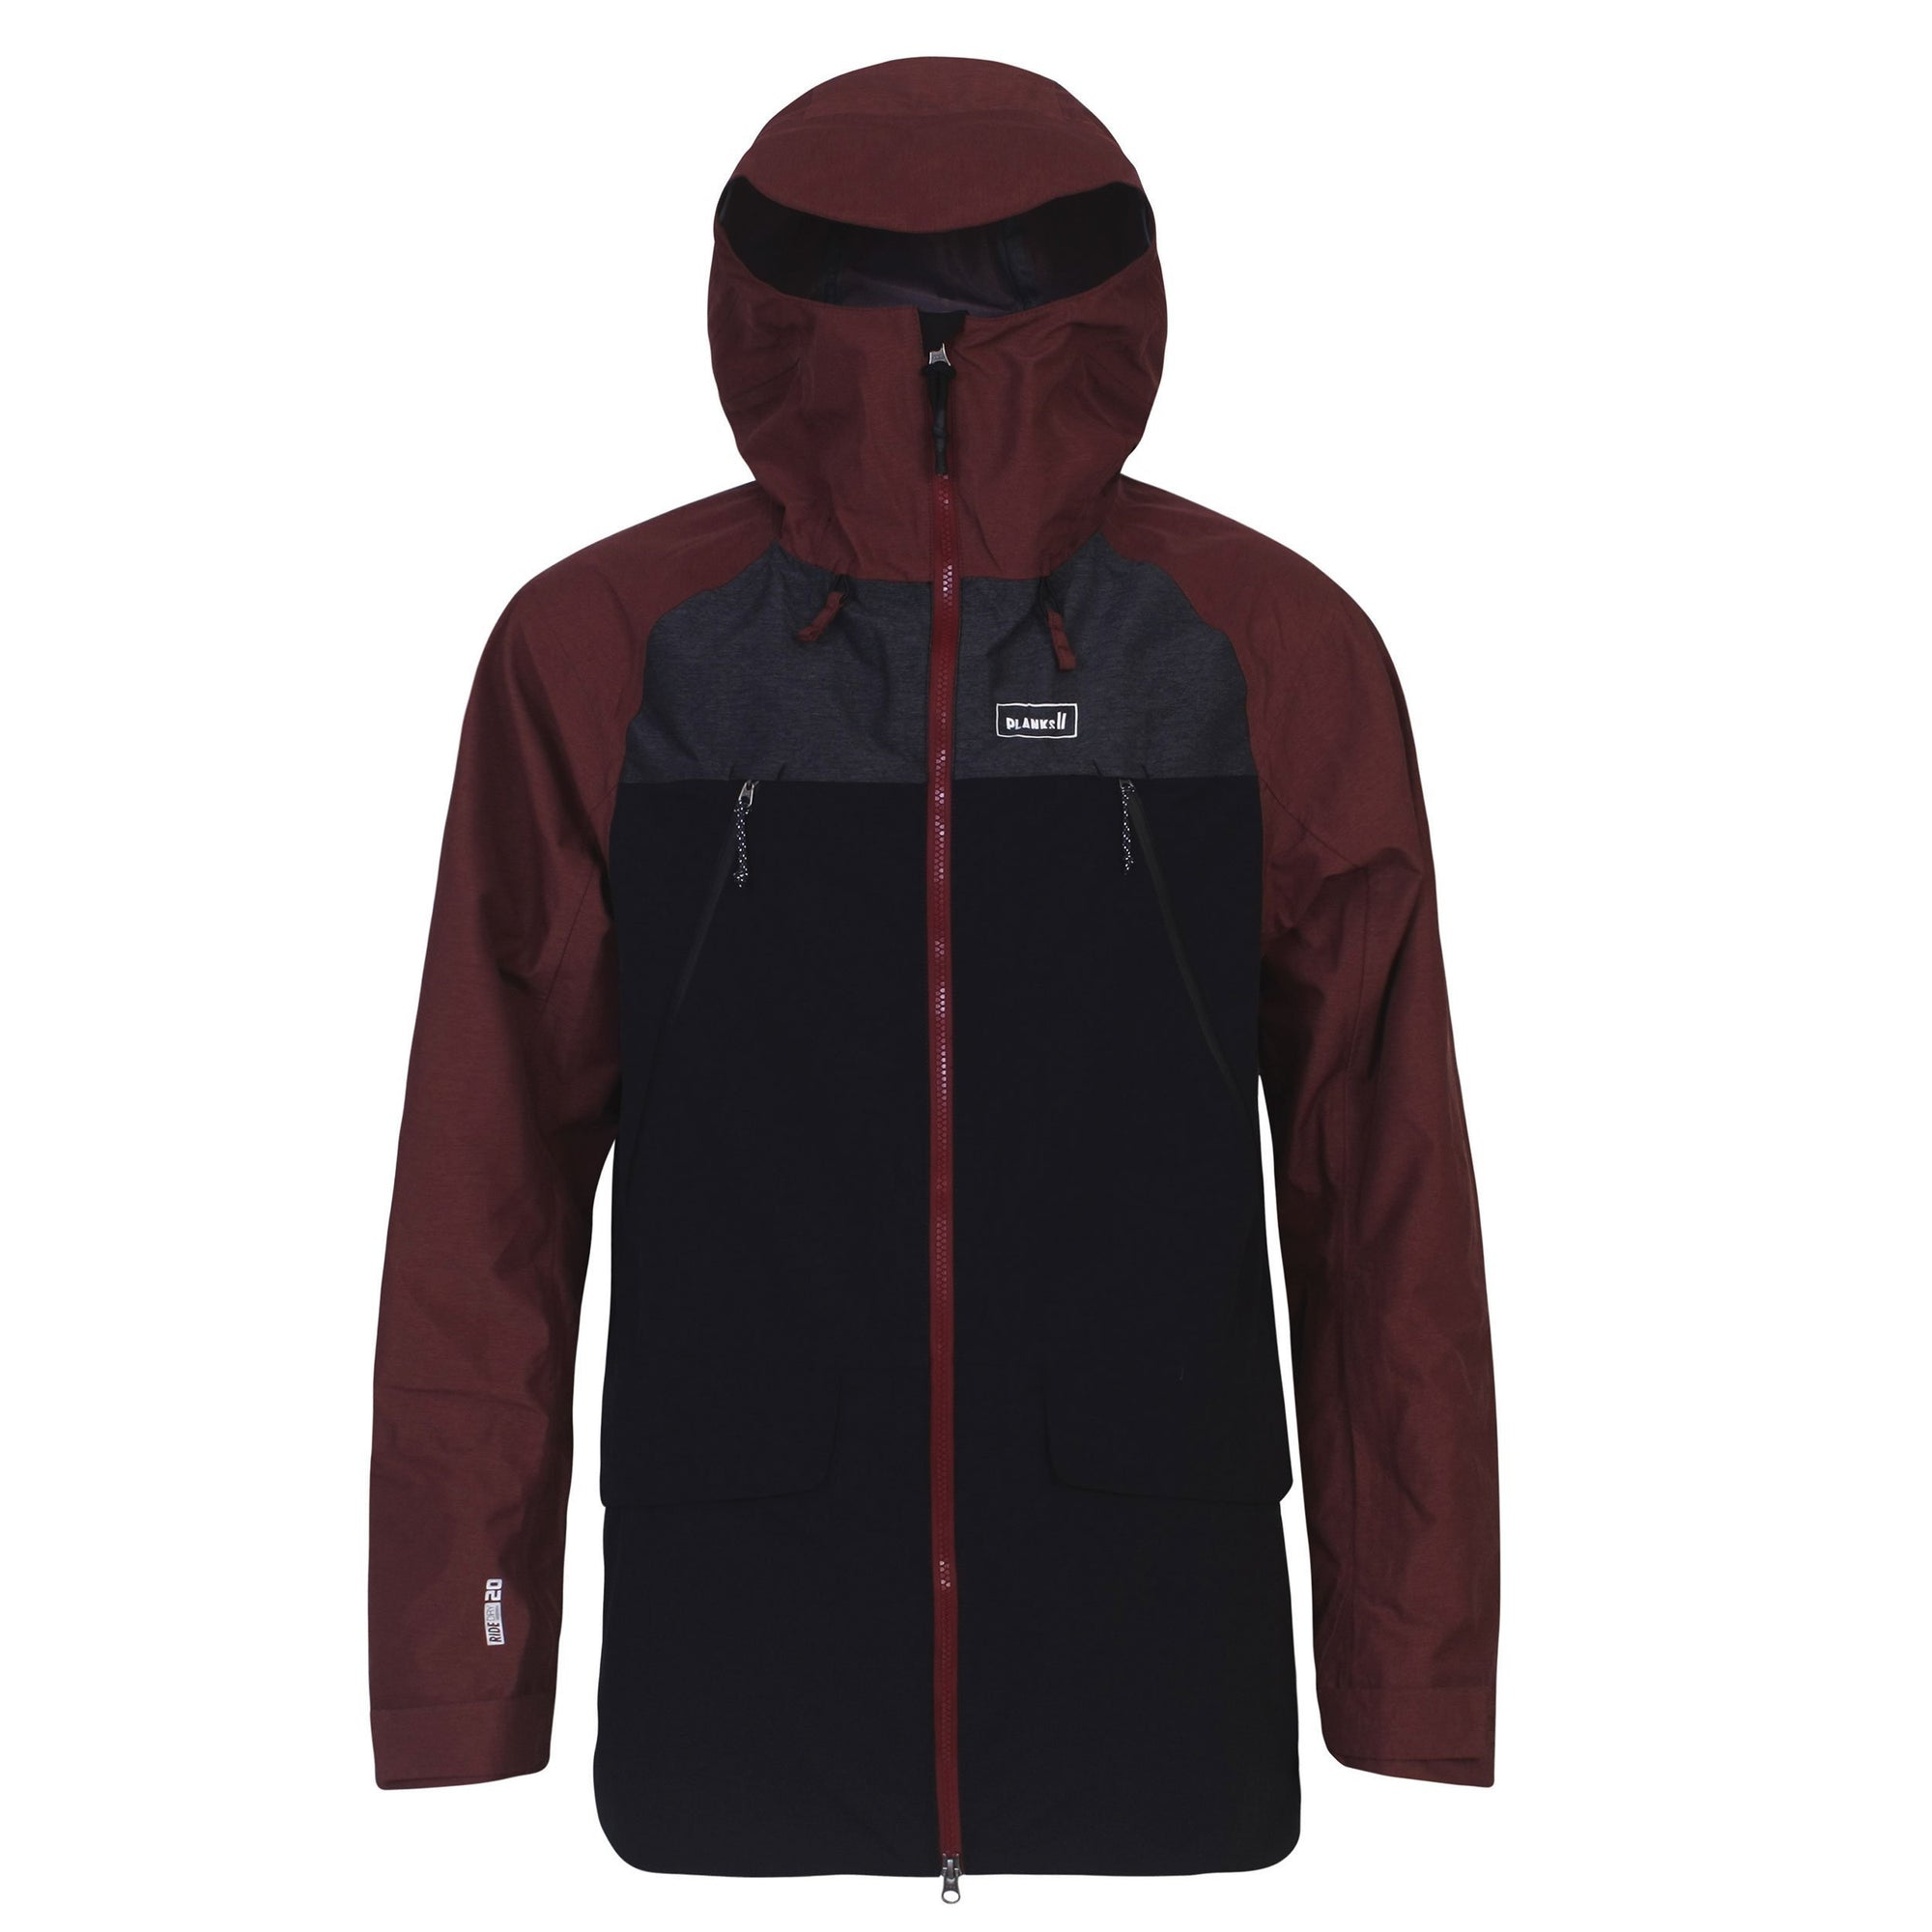 1b5da92932 Men's Yeti Hunter Shell Jacket Maroon | Ski wear | Planks Clothing – Planks  Clothing | UK